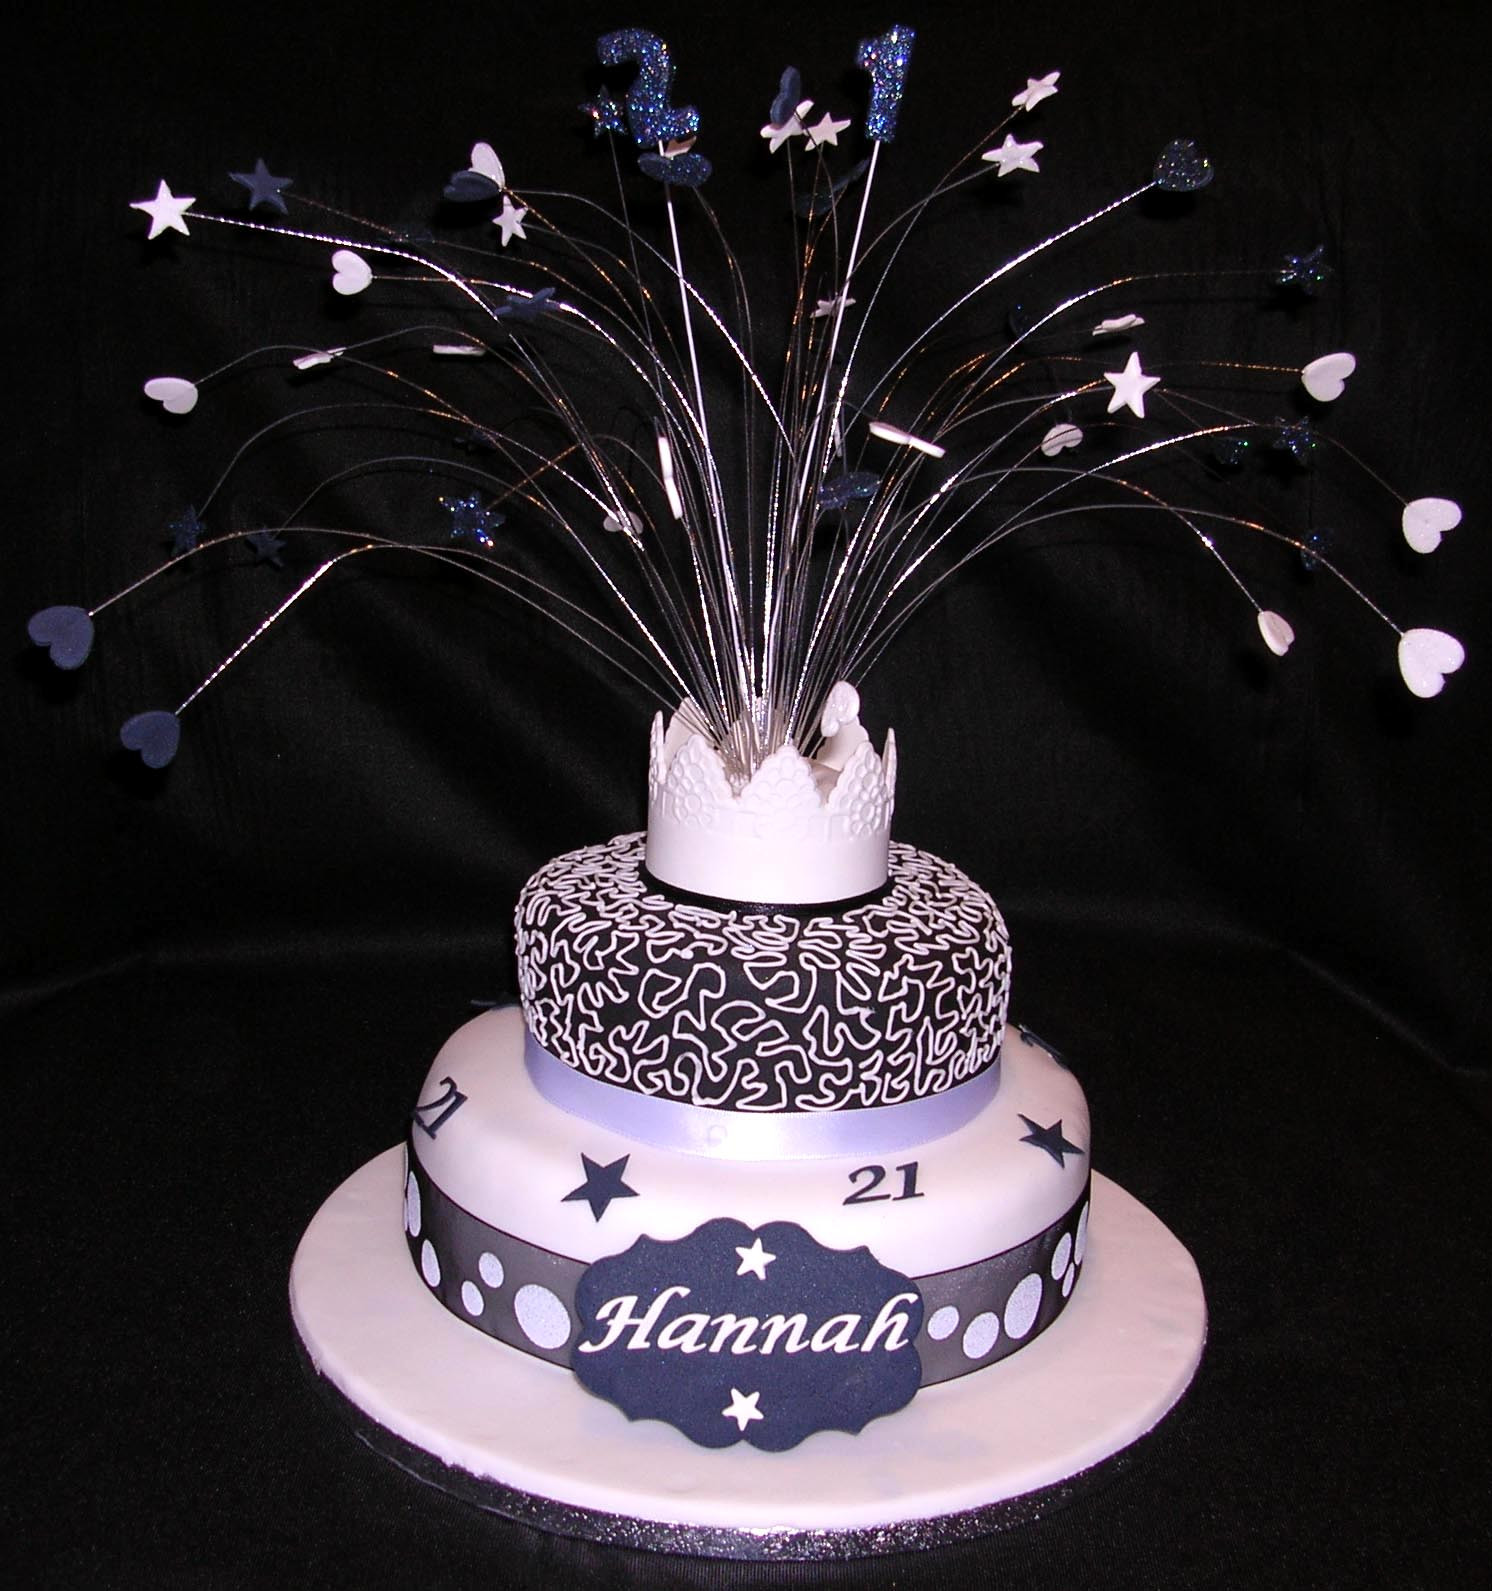 Best ideas about 21st Birthday Cake . Save or Pin Birthday Cakes Now.